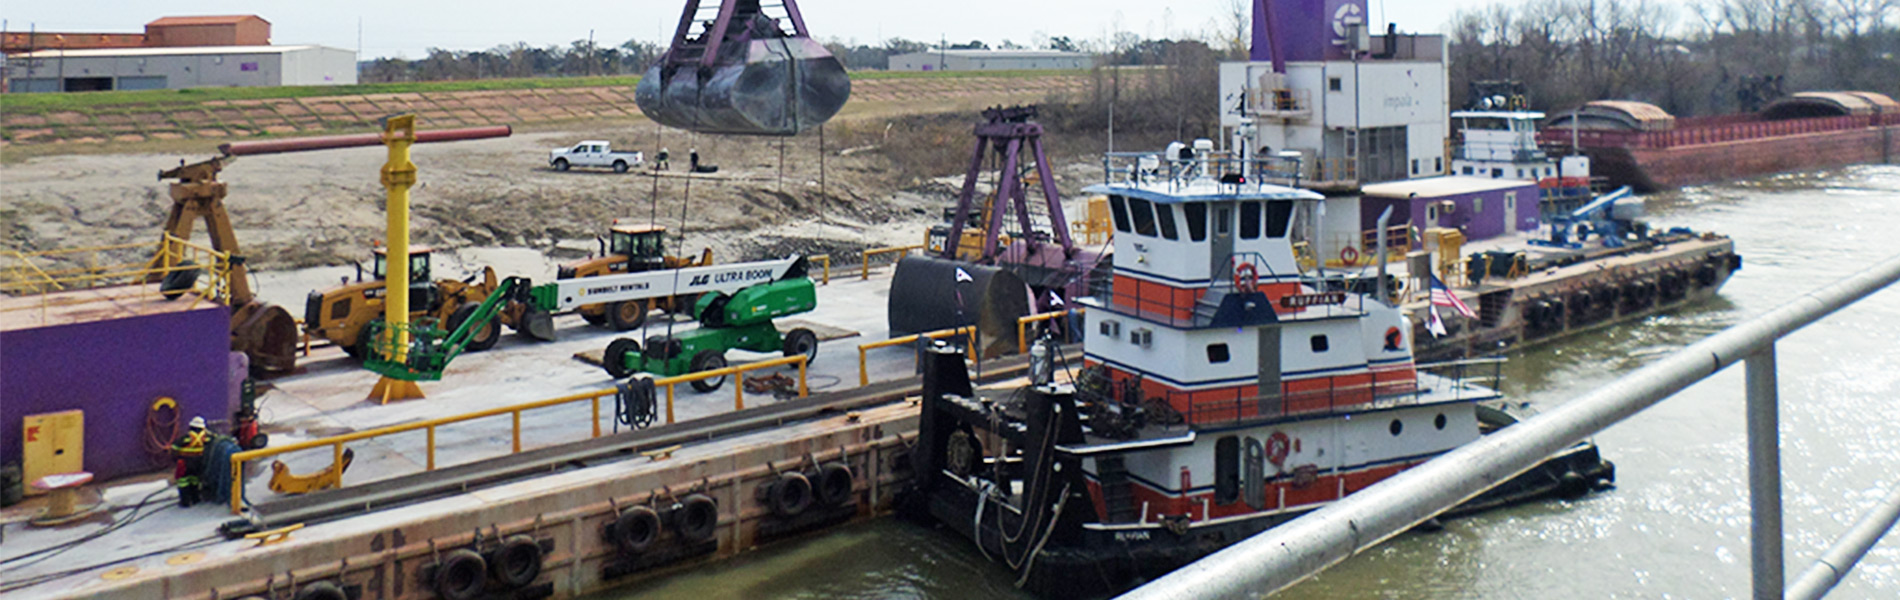 Freight Forwarding in Beaumont, TX | Maritime Services